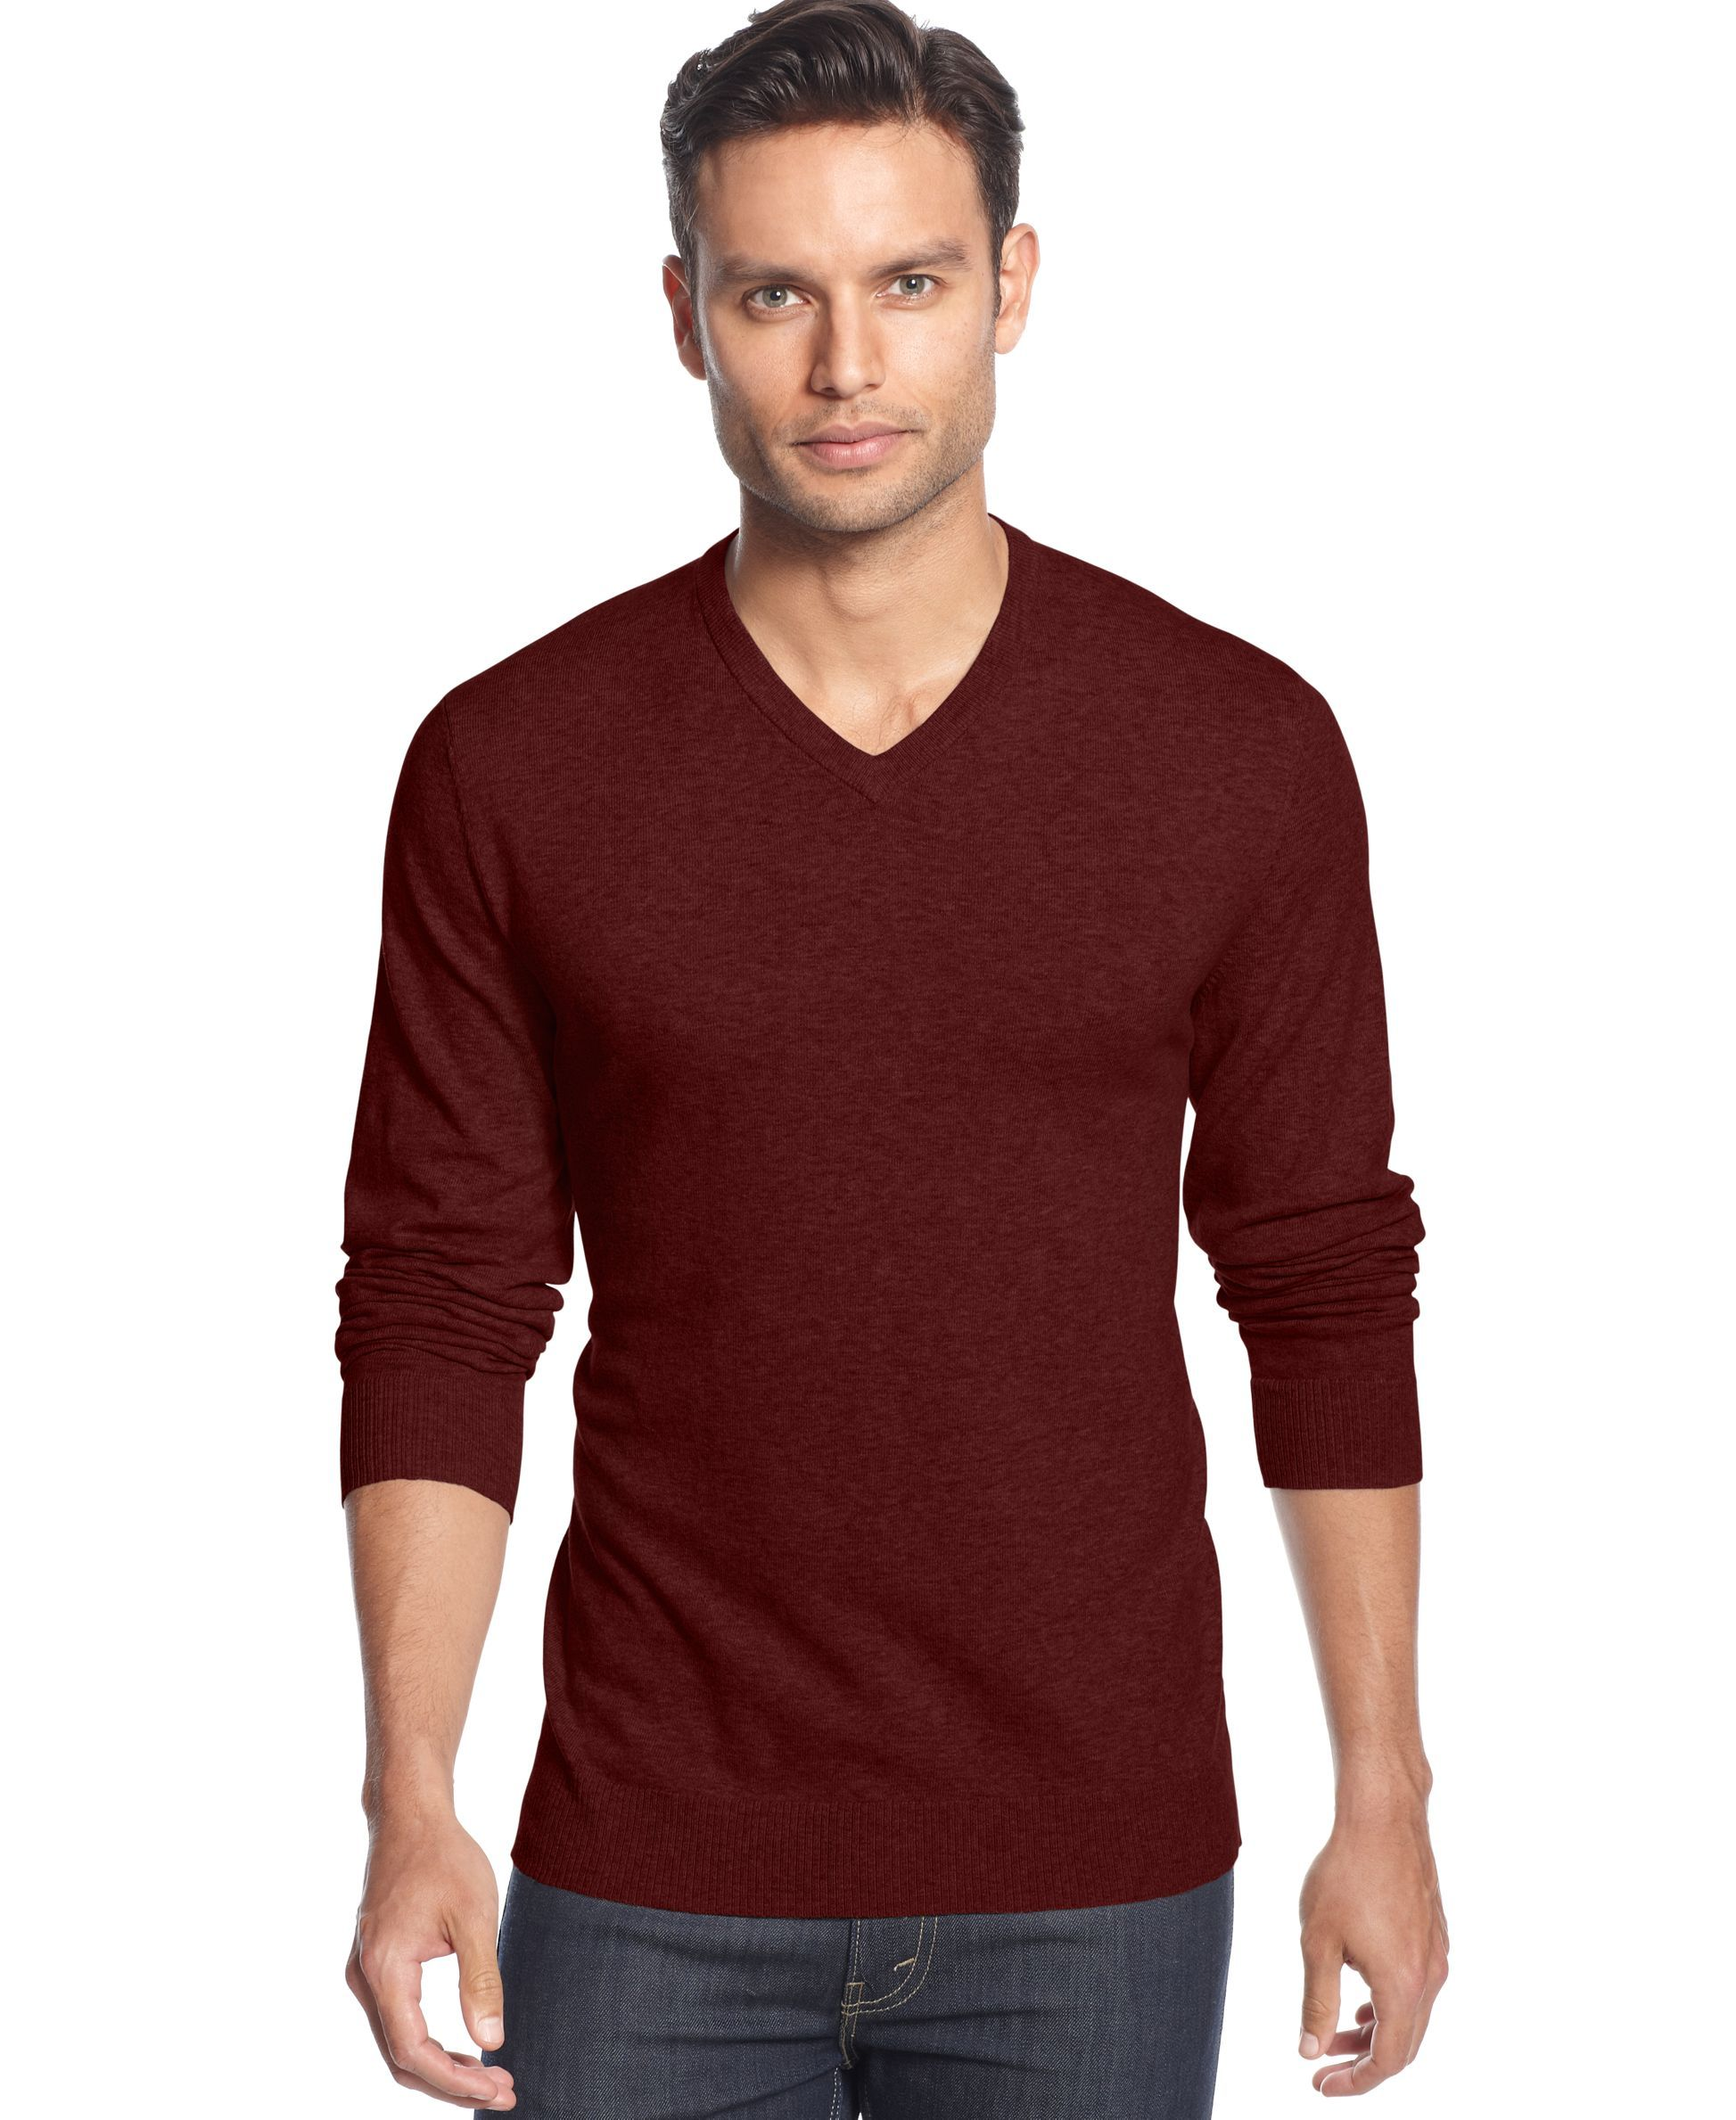 dfab305416f Men's V-Neck Sweater, Created for Macy's | Gifts | Men's v neck ...